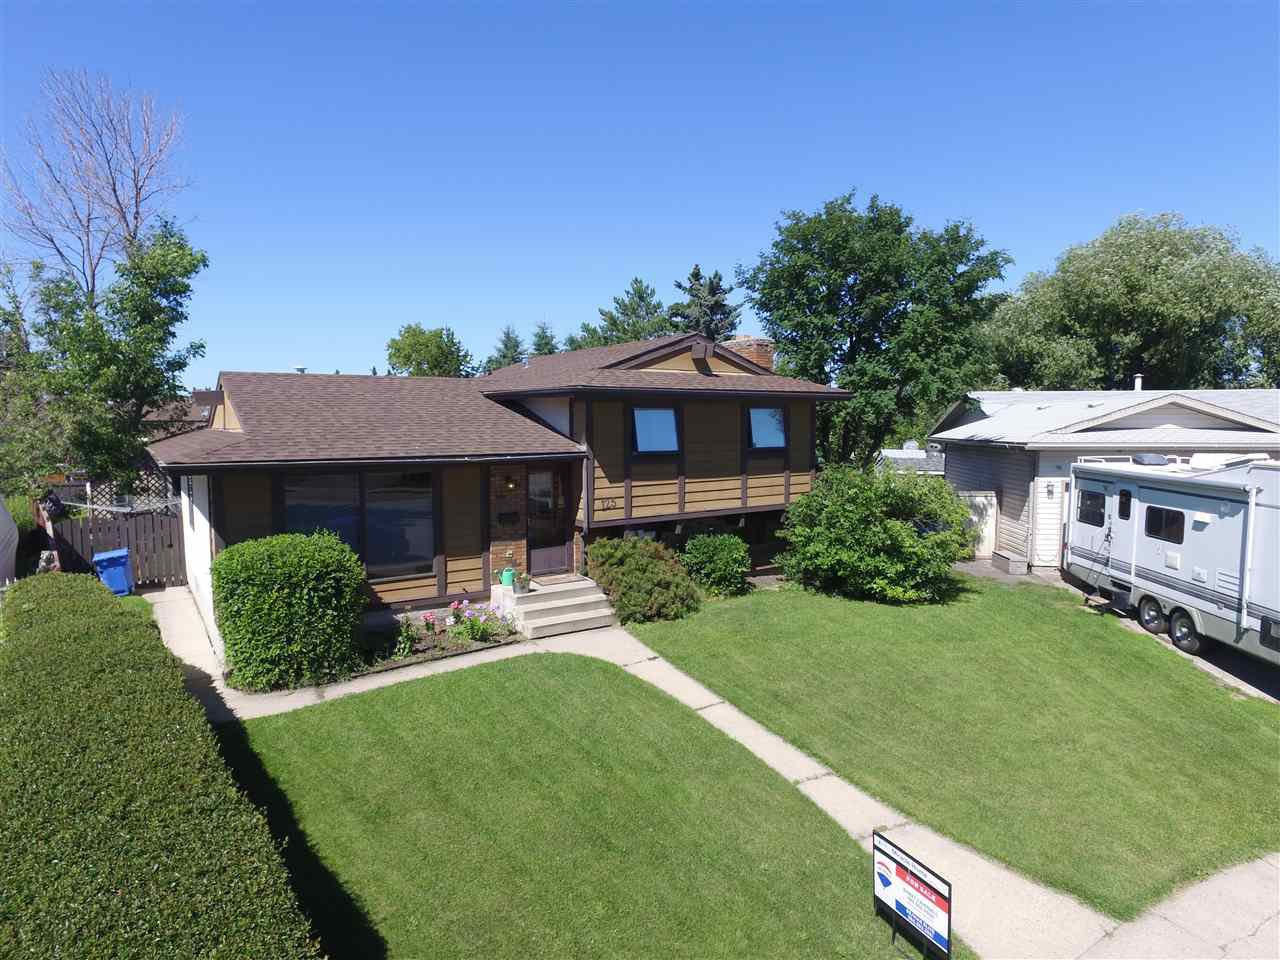 Photo 24: Photos: 125 Spruce Crescent: Wetaskiwin House for sale : MLS®# E4207728